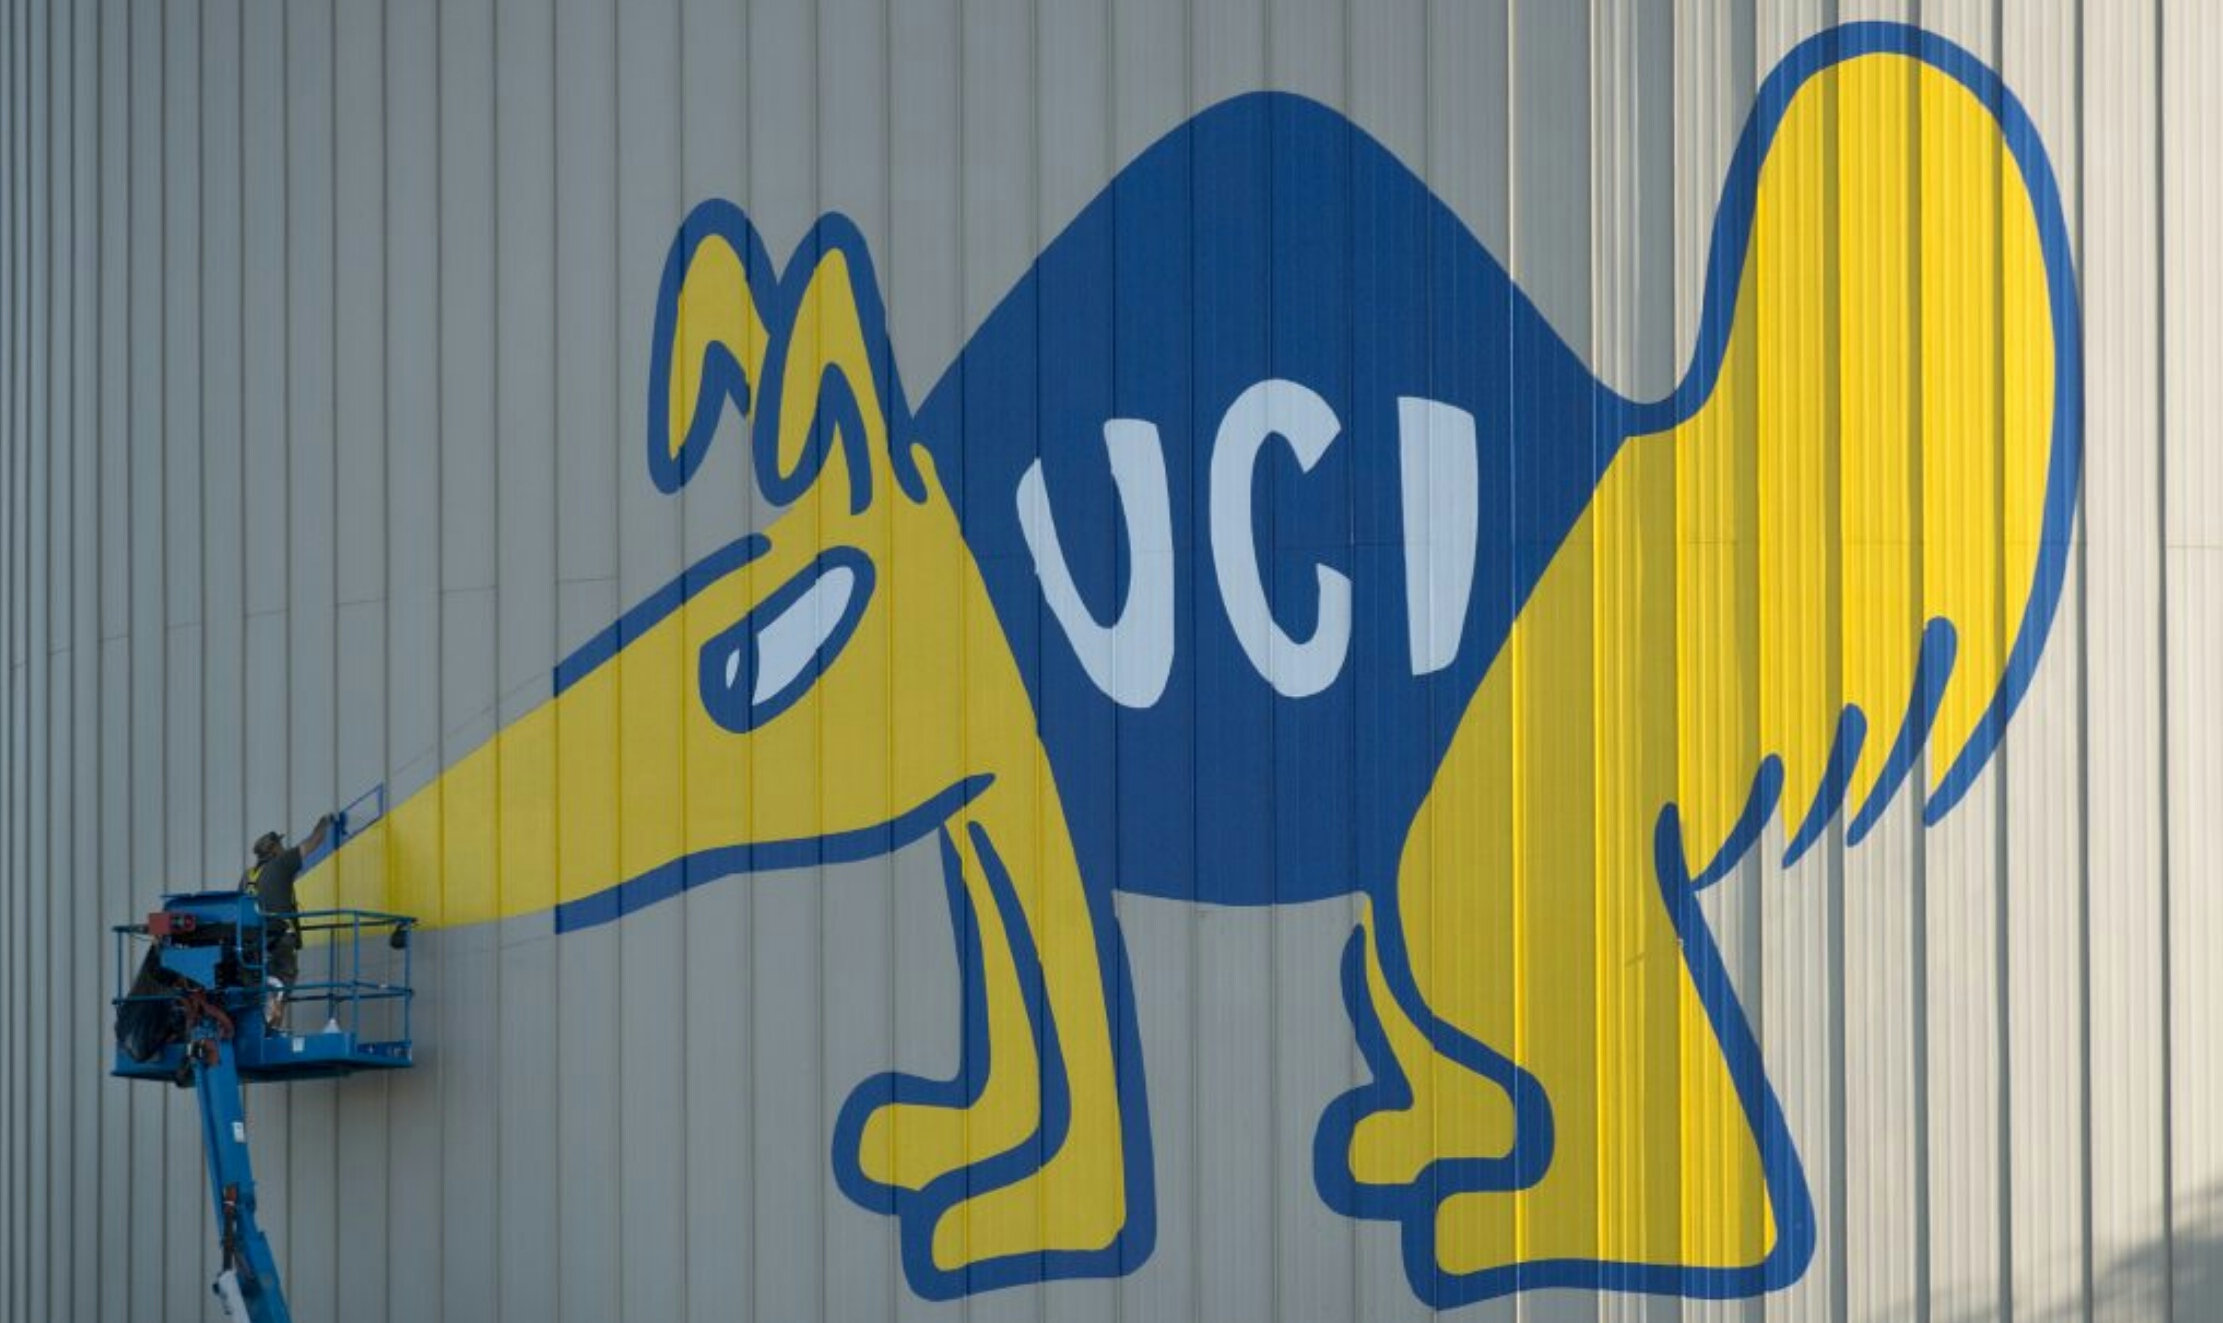 HAND PAINTING PETER THE ANTEATER AT UC IRVINE, ORANGE COUNTY, CA